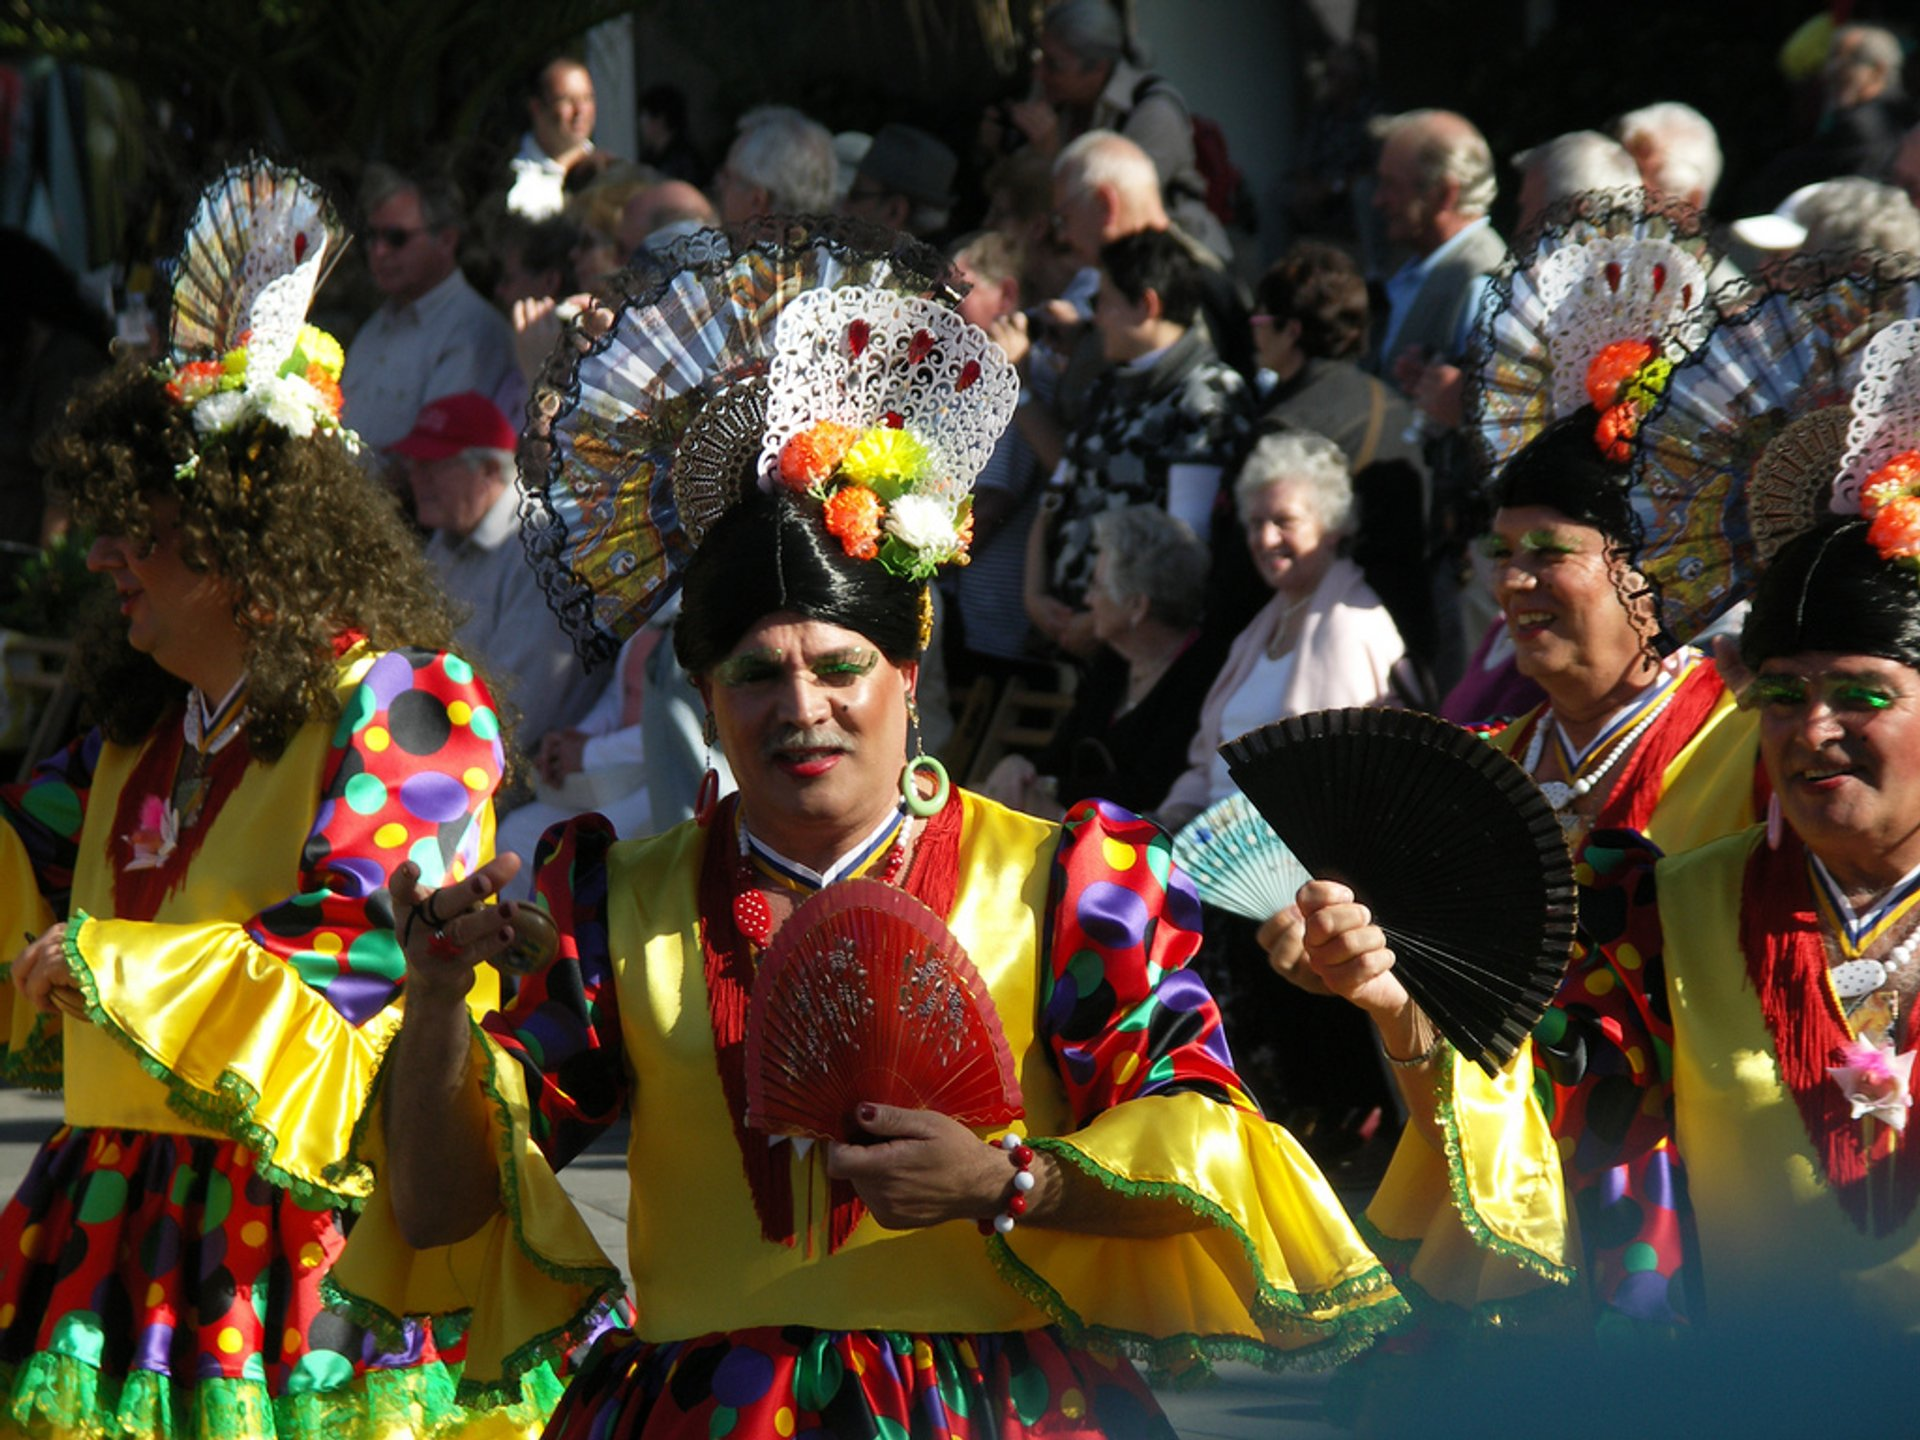 Puerto de la Cruz Carnival in Canary Islands 2020 - Best Time